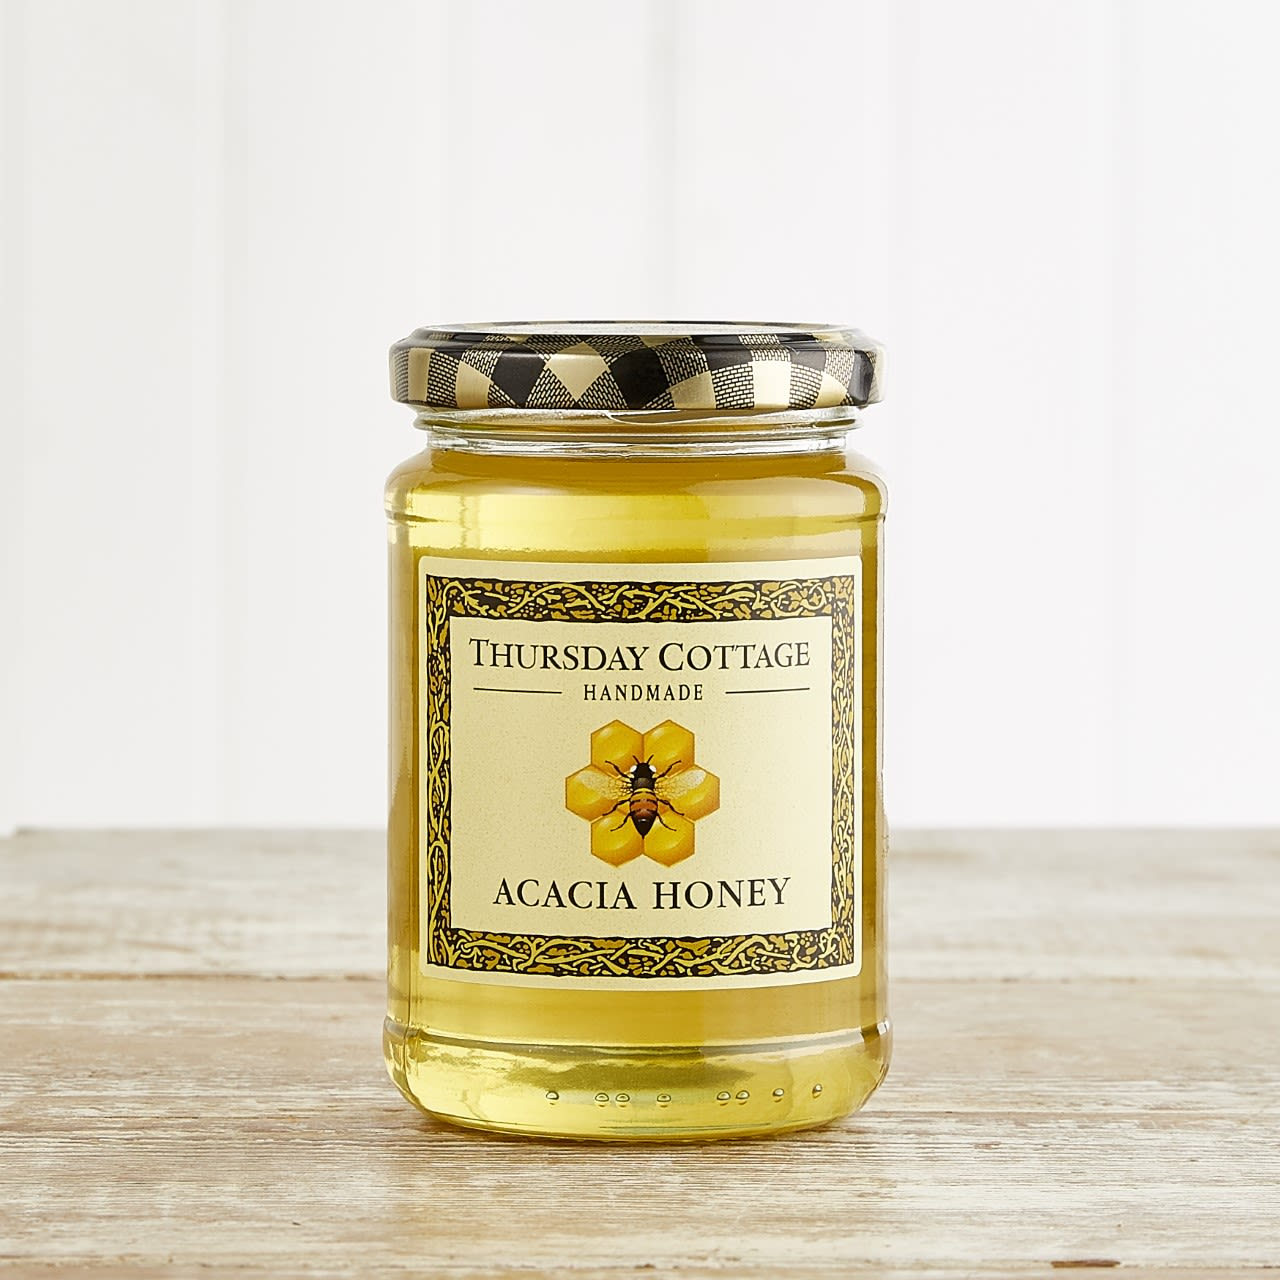 Thursday Cottage Acacia Honey in Glass, 340g